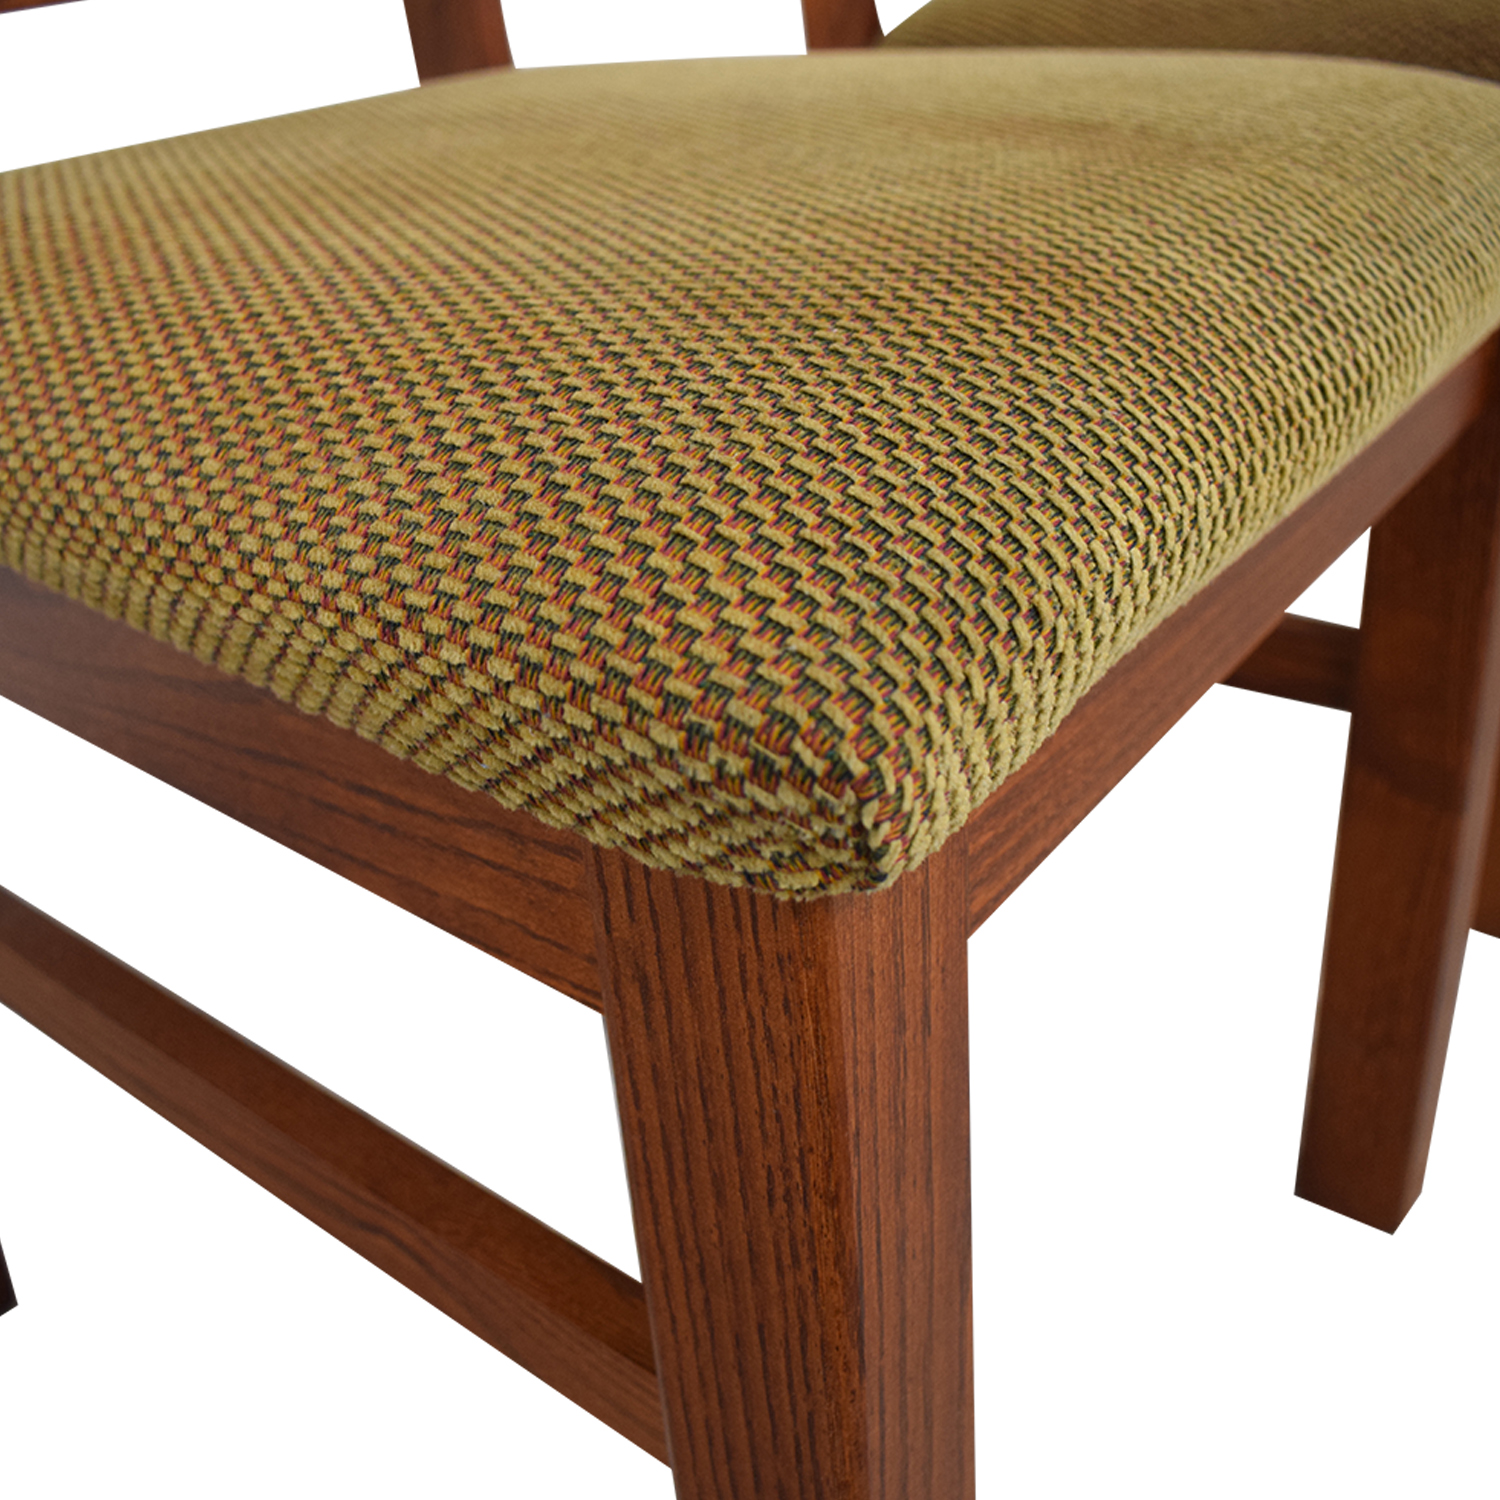 Wood Upholstered Dining Chairs on sale